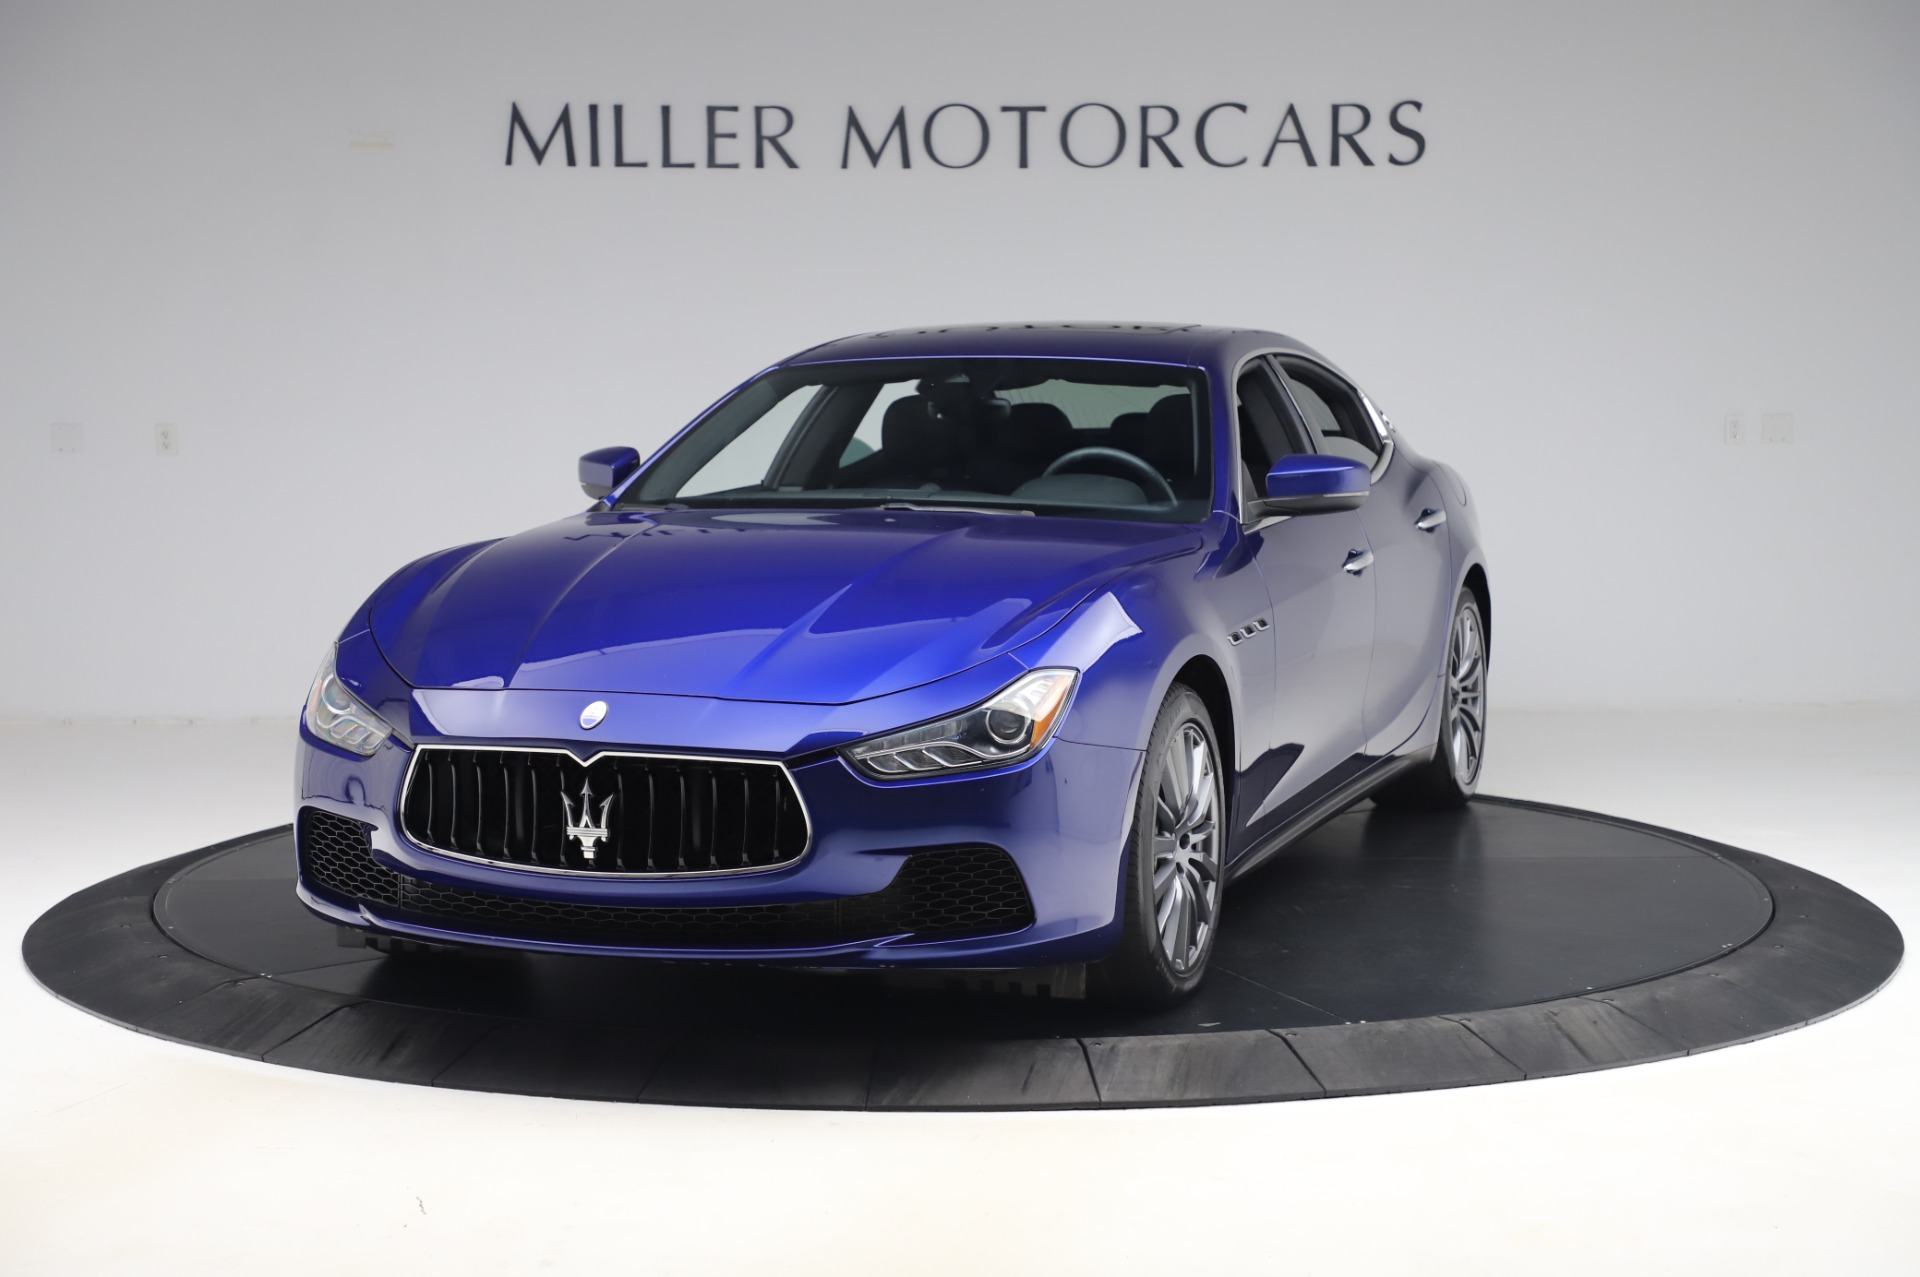 Used 2017 Maserati Ghibli S Q4 for sale $41,900 at Pagani of Greenwich in Greenwich CT 06830 1